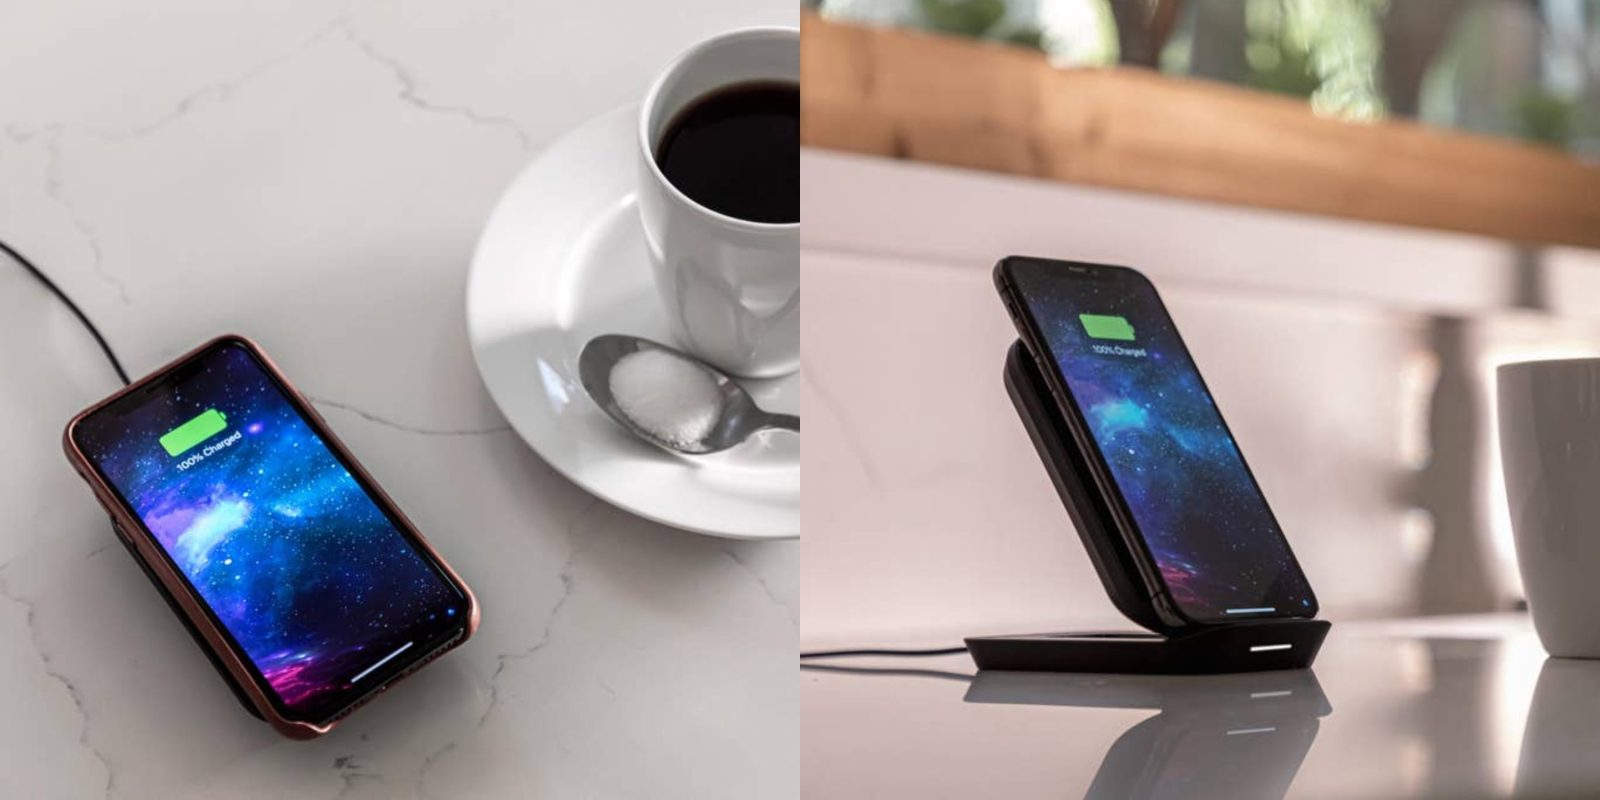 Mophie launches convertible stand to pad wireless charger for iPhone, works in portrait or landscape orientation